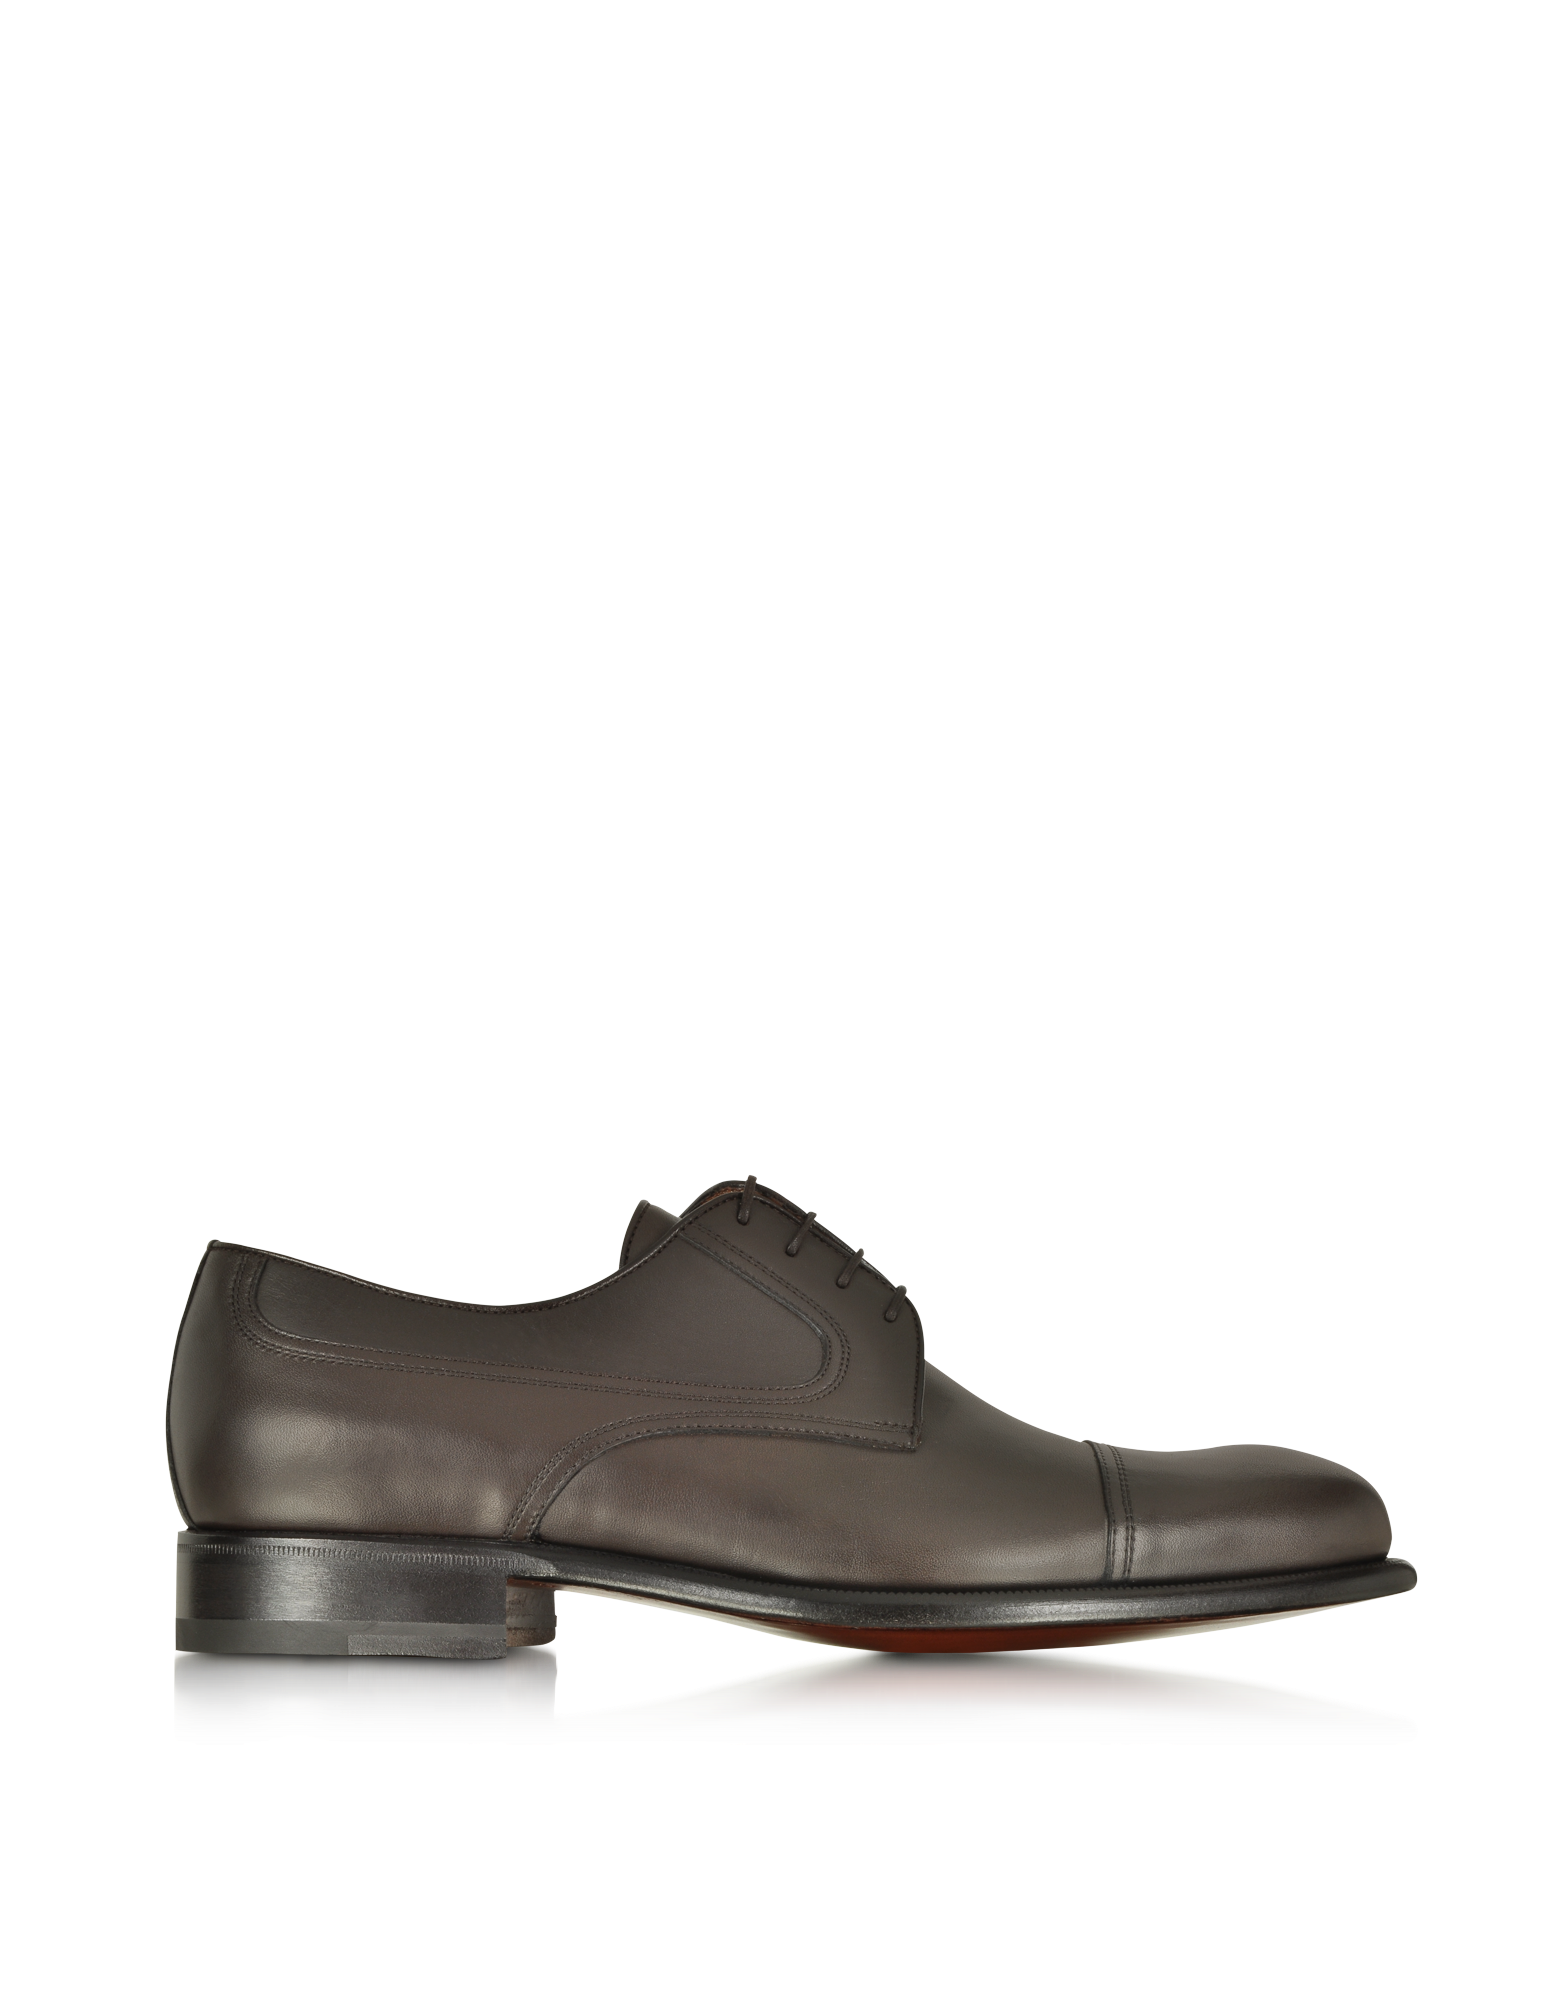 Image of Alo Leather Derby Shoe